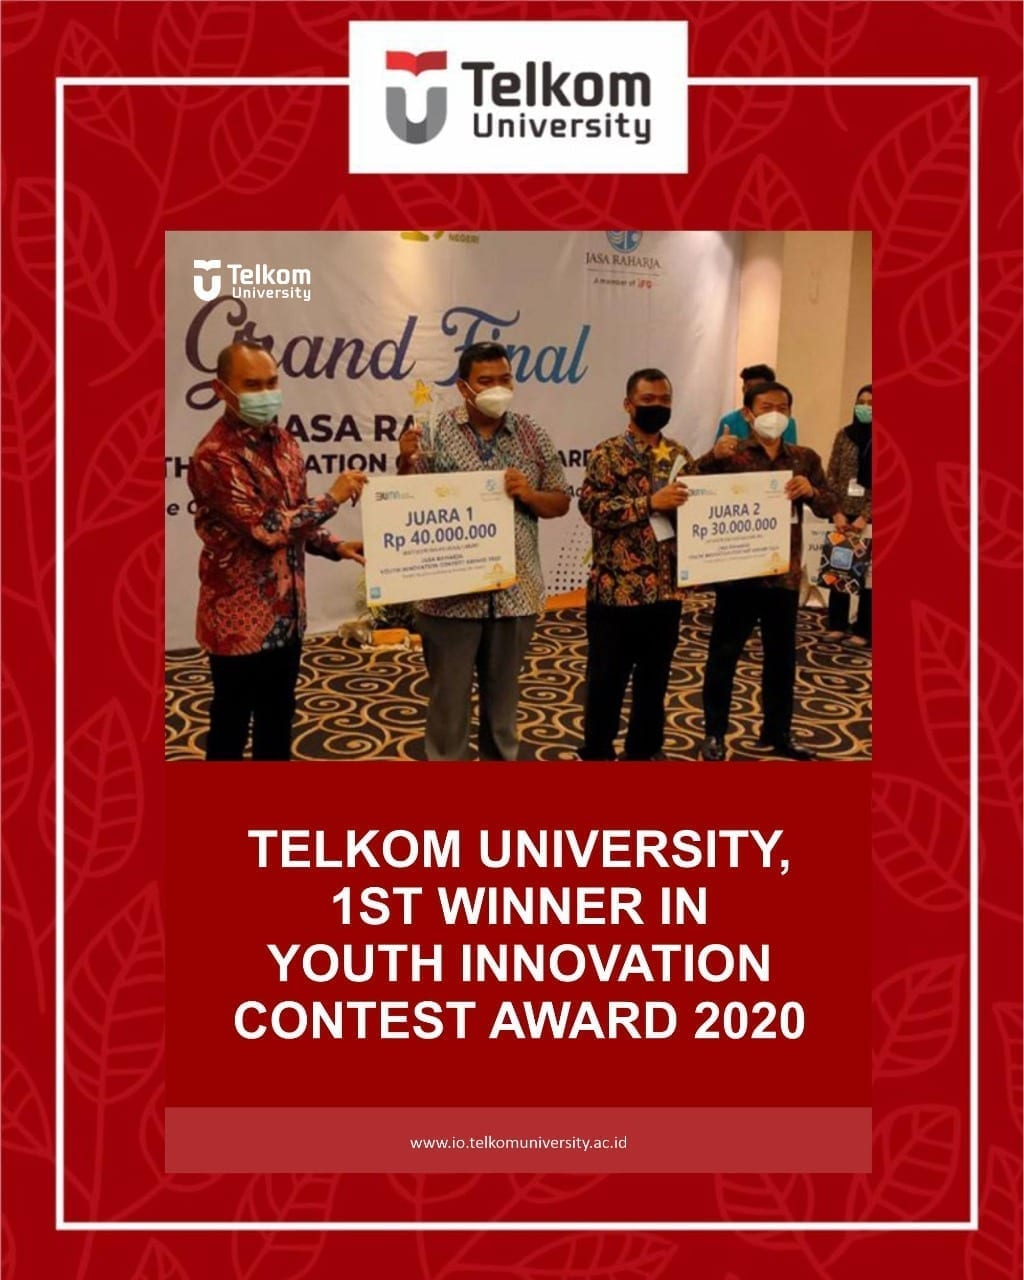 Telkom University Won the Youth Innovation Contest Award 2020